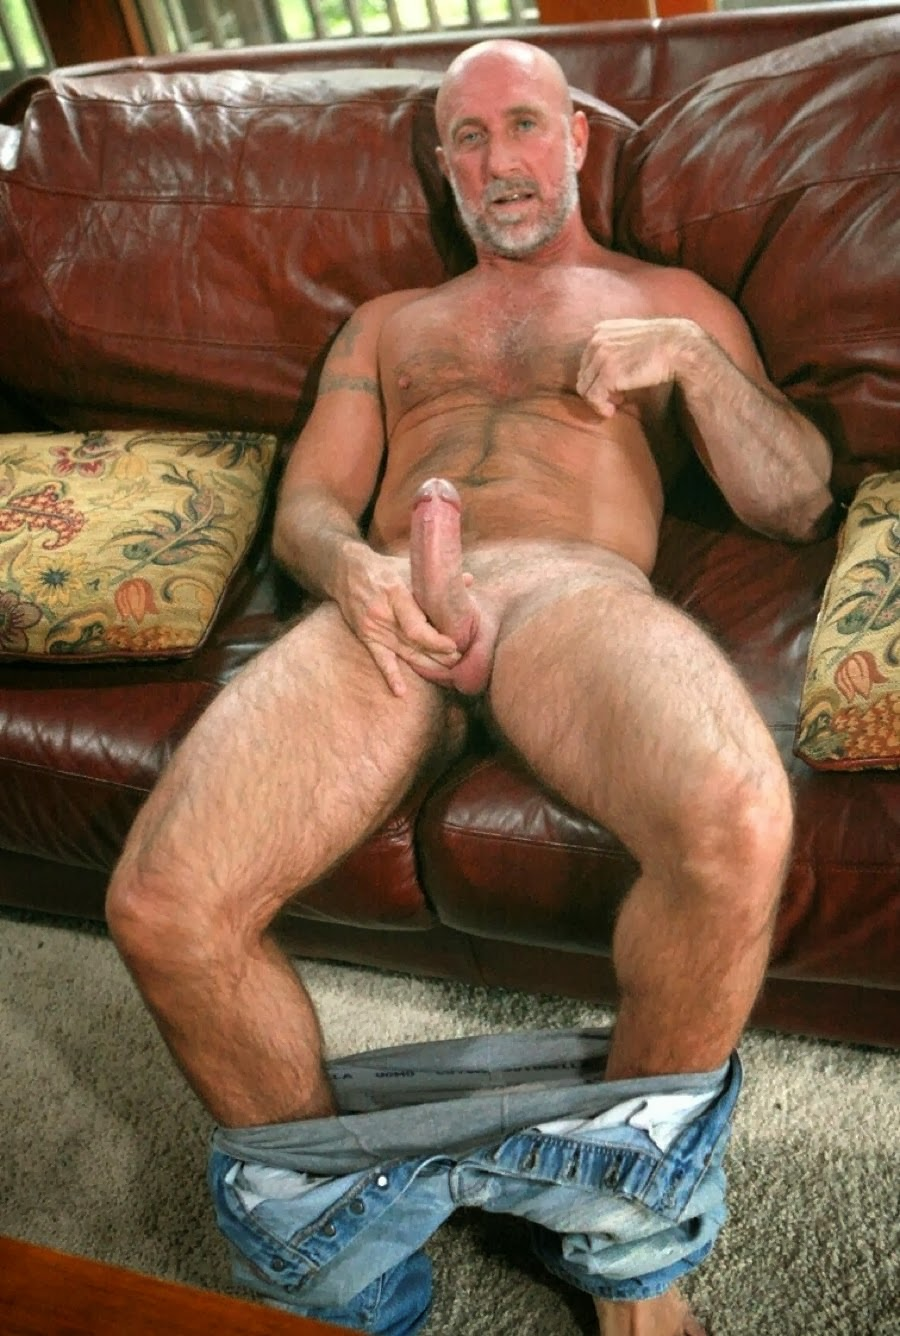 from Aiden older gay photo